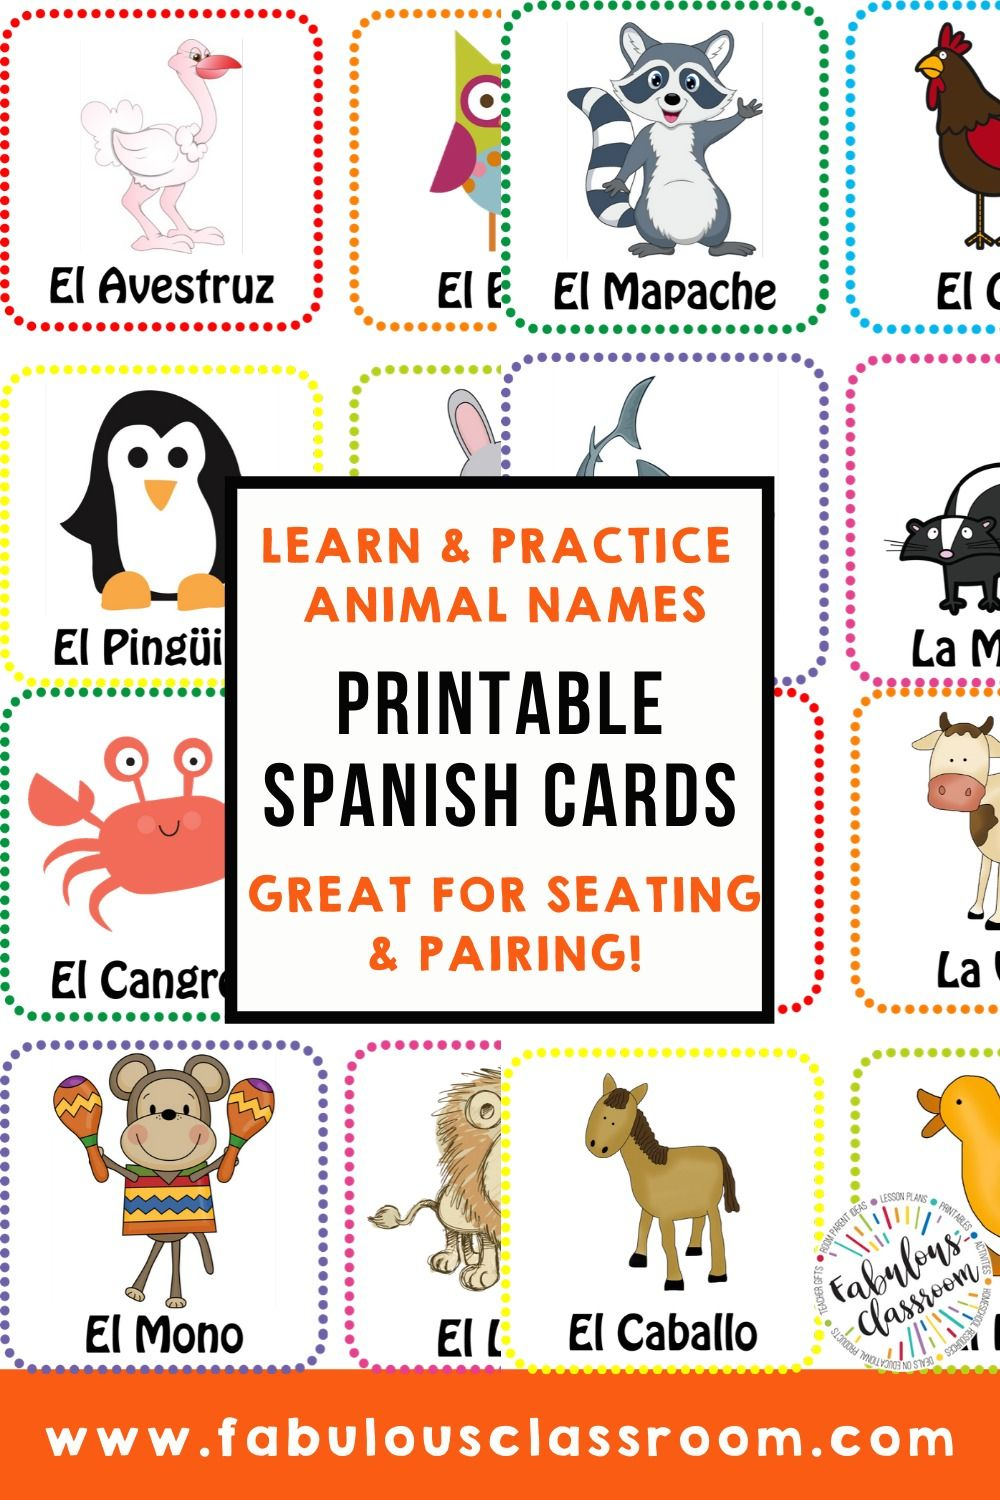 Spanish Animals Printable Flash Cards Distance Learning In 2020 Spanish Animals Learning Spanish Vocabulary Learning Spanish